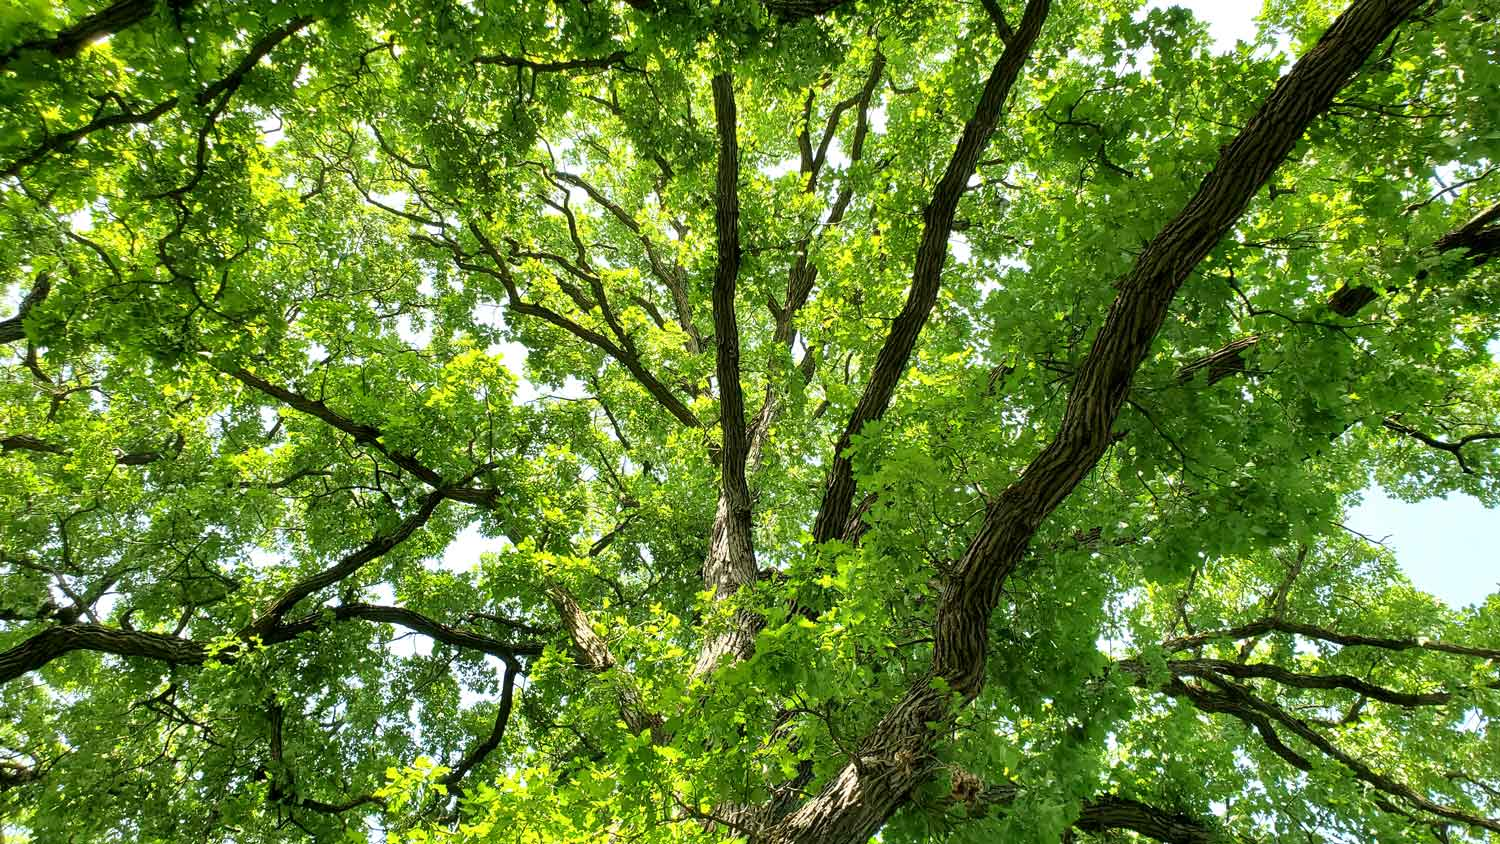 Looking up through tree branches along grassy path near pond at Veteran Acres Park.